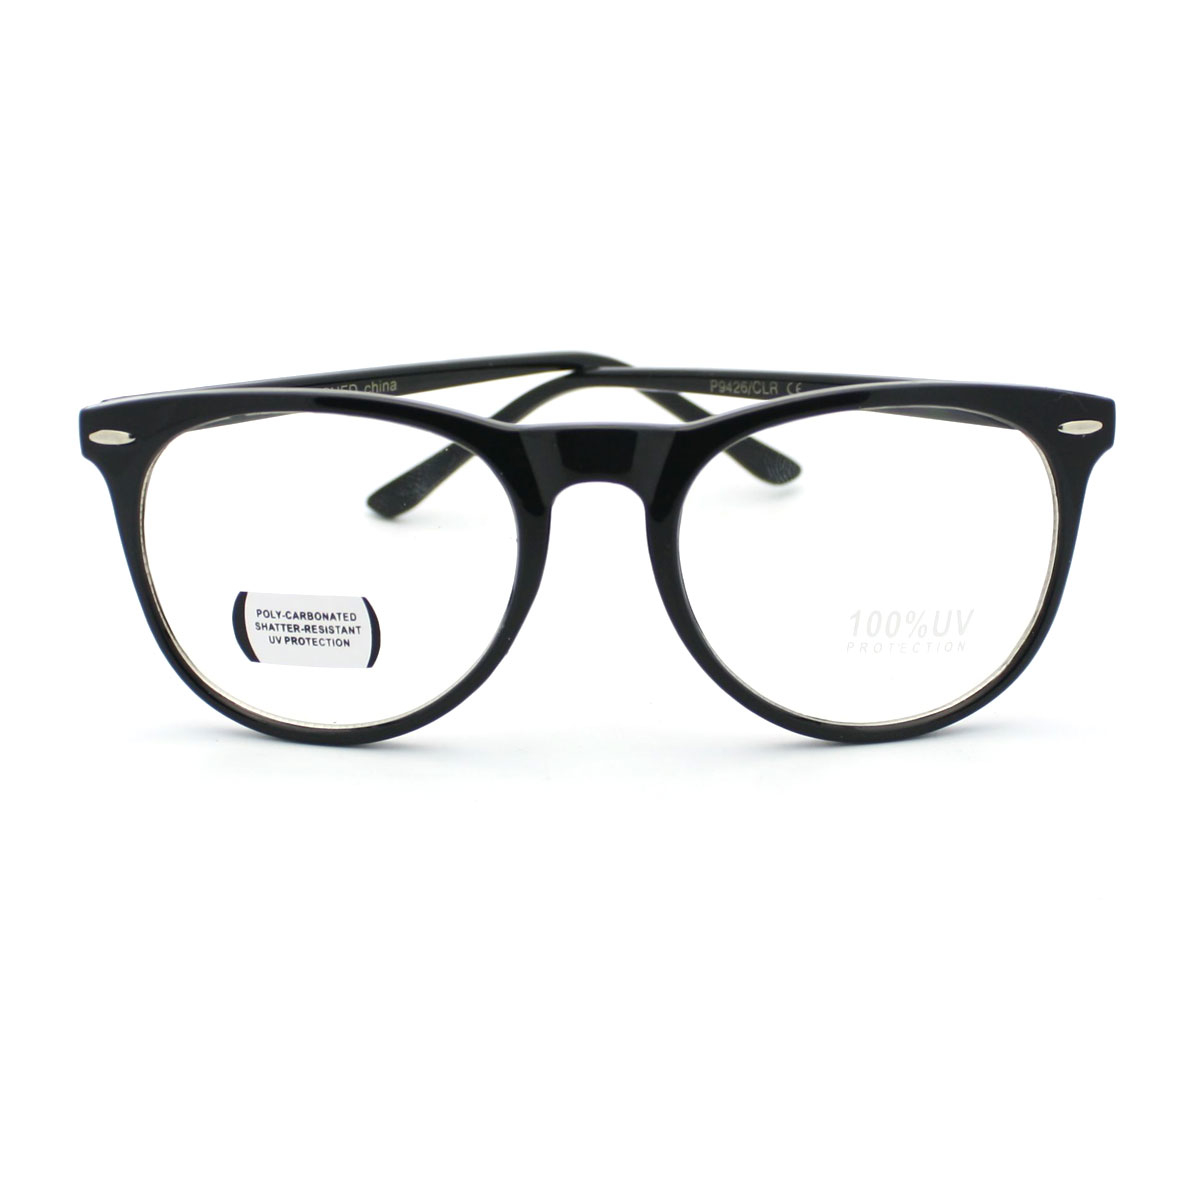 3ef4a2fc672 Details about Geeky Round Thin Horn Rim Fashion Nerd Eye Glasses (3 Color  Option)